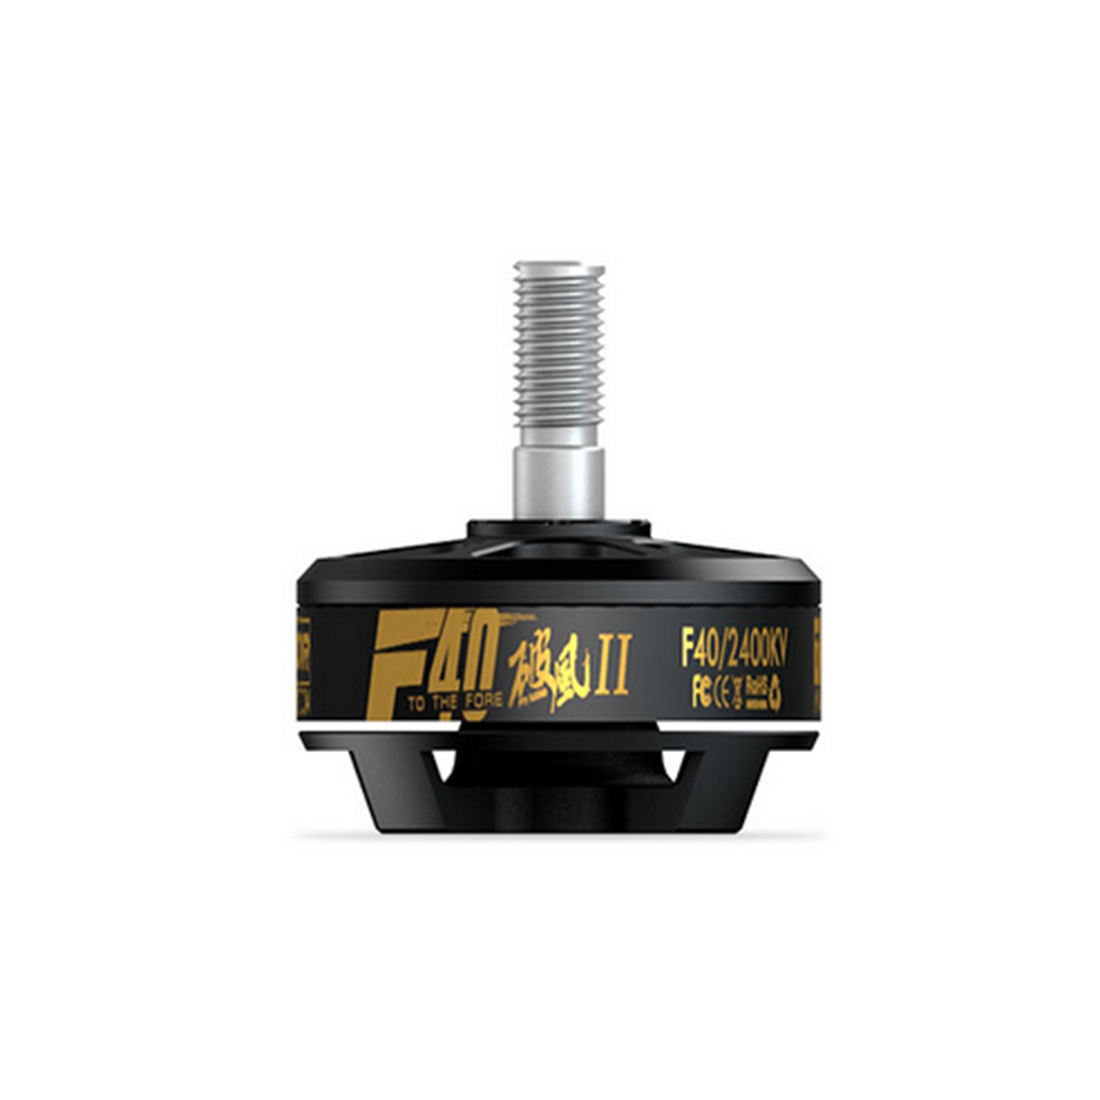 T-Motor New Released High Performance FPV motor F40 II 2400KV/2600KV Racing motor RC Quadcopter Accessories<br><br>Aliexpress